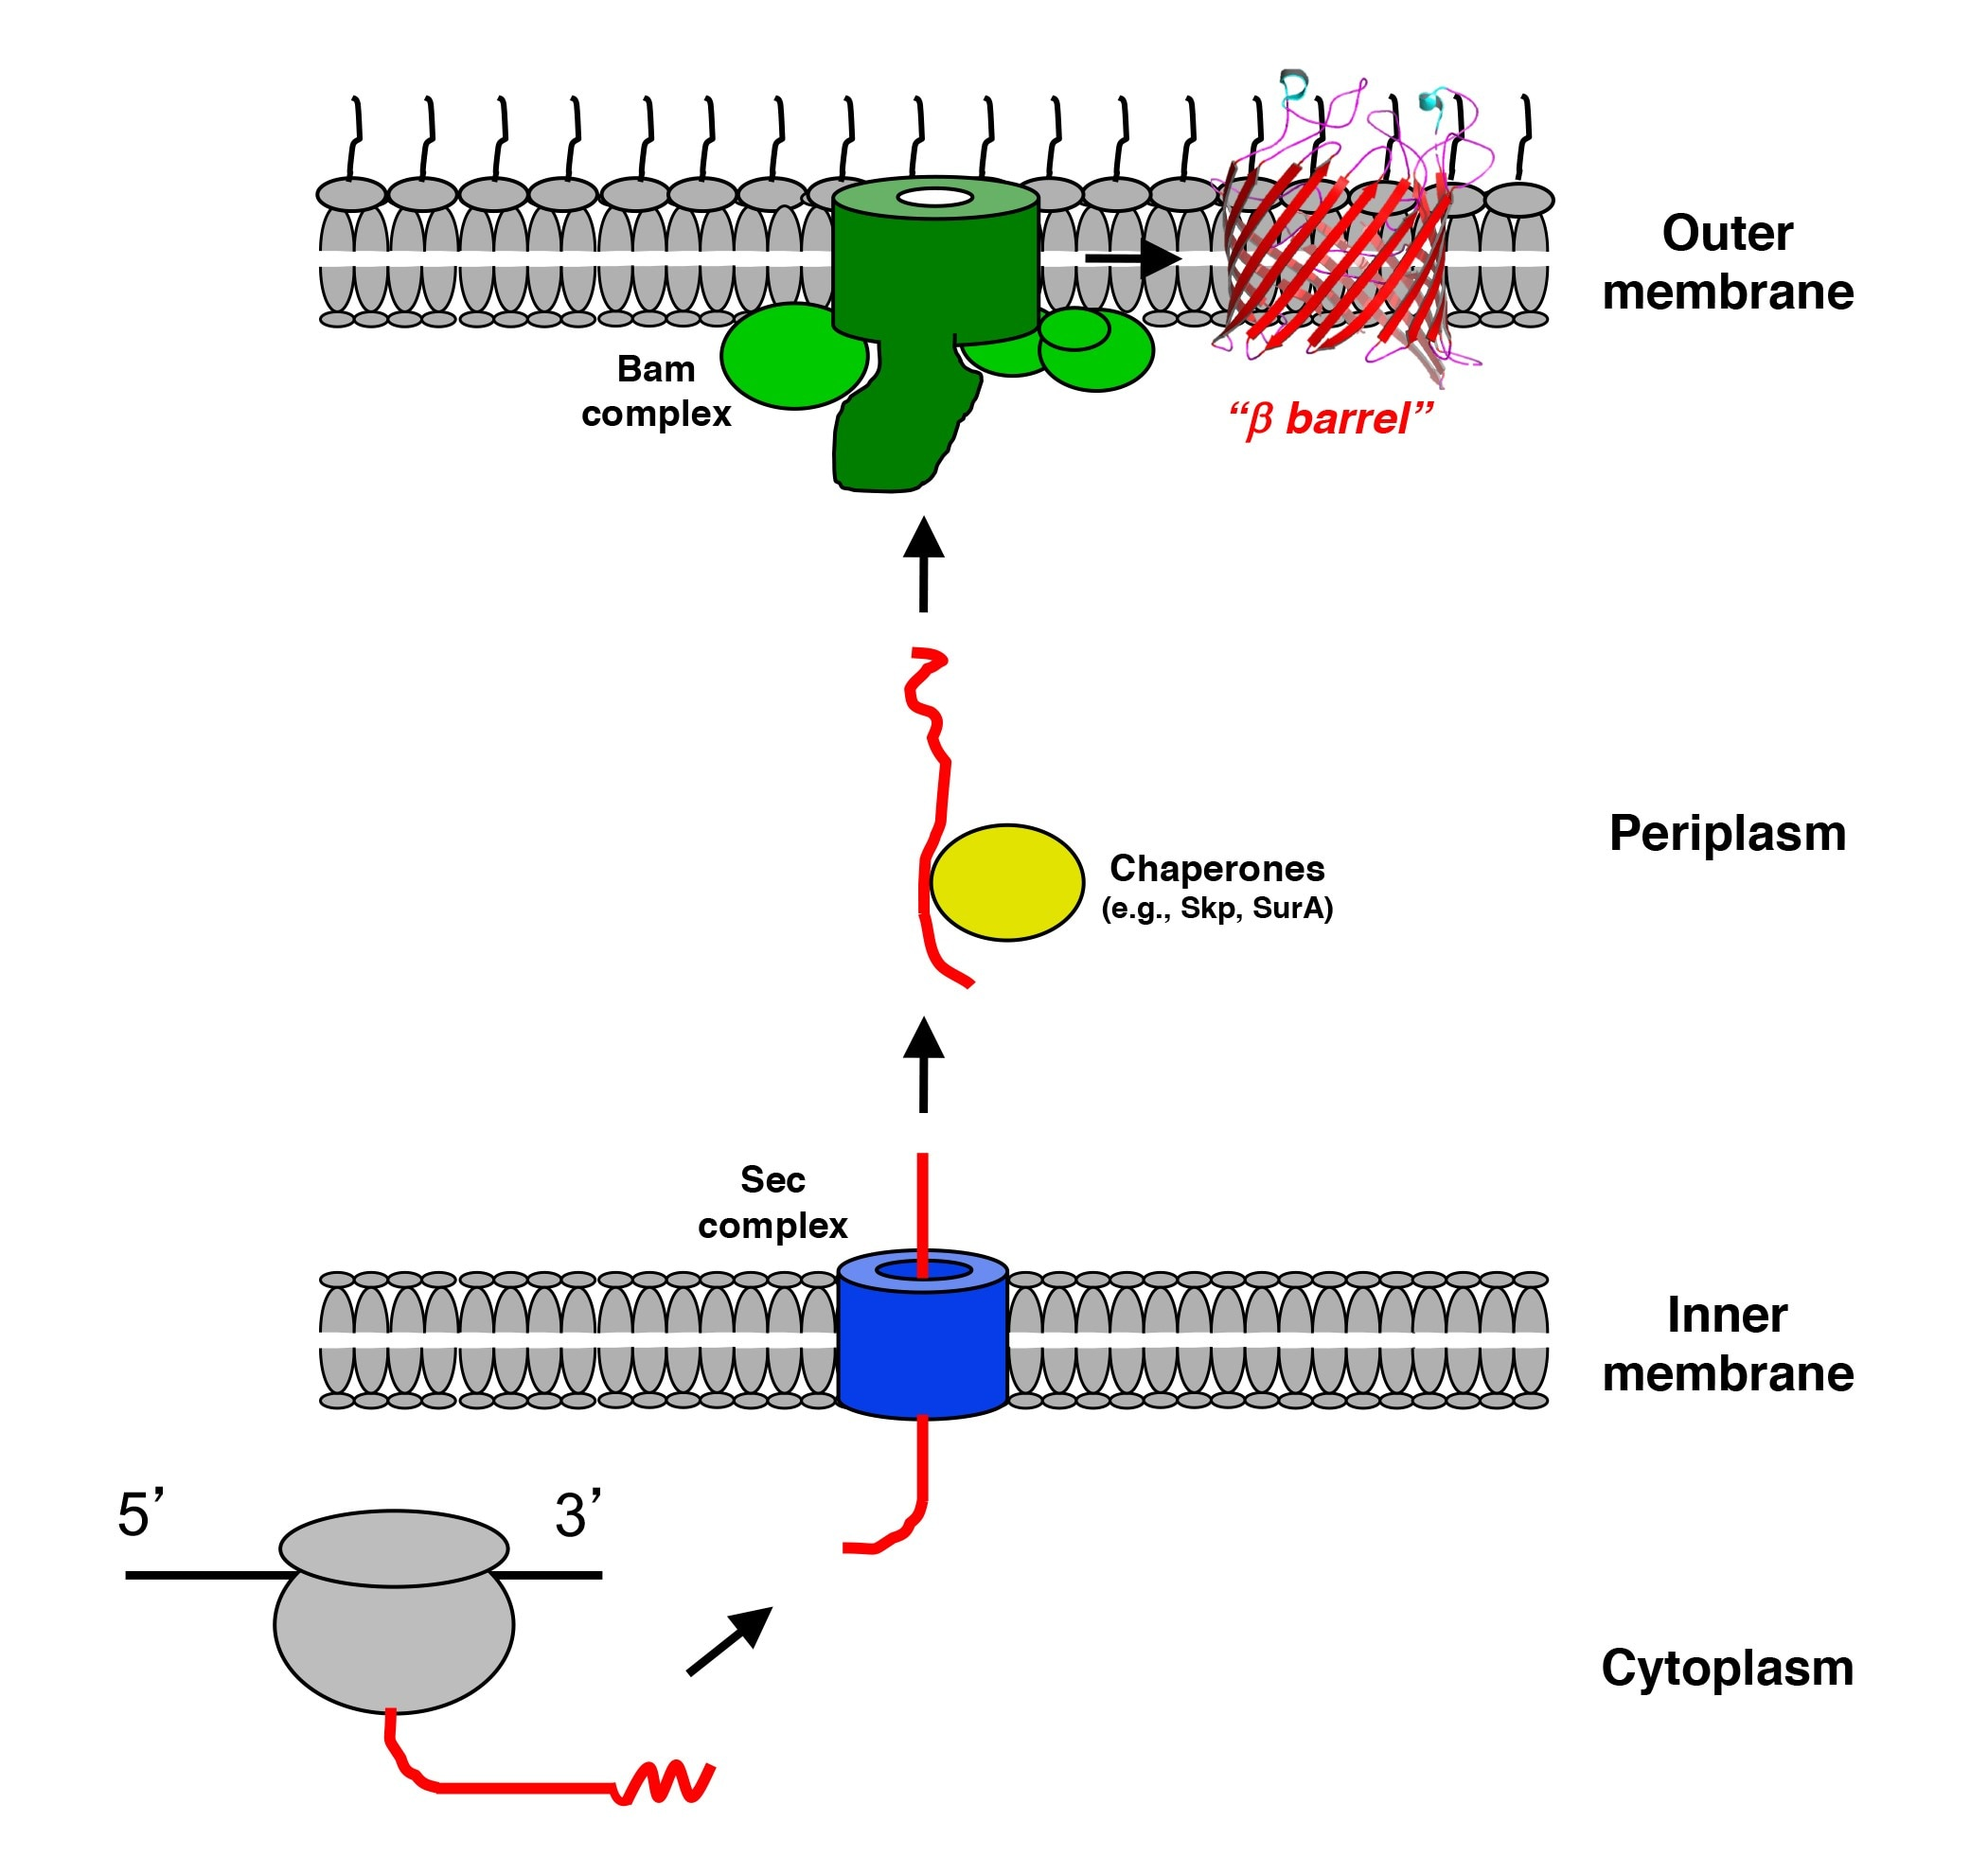 A graphic which depicts outer membrane protein (O M P) biogenesis in Gram-negative bacteria